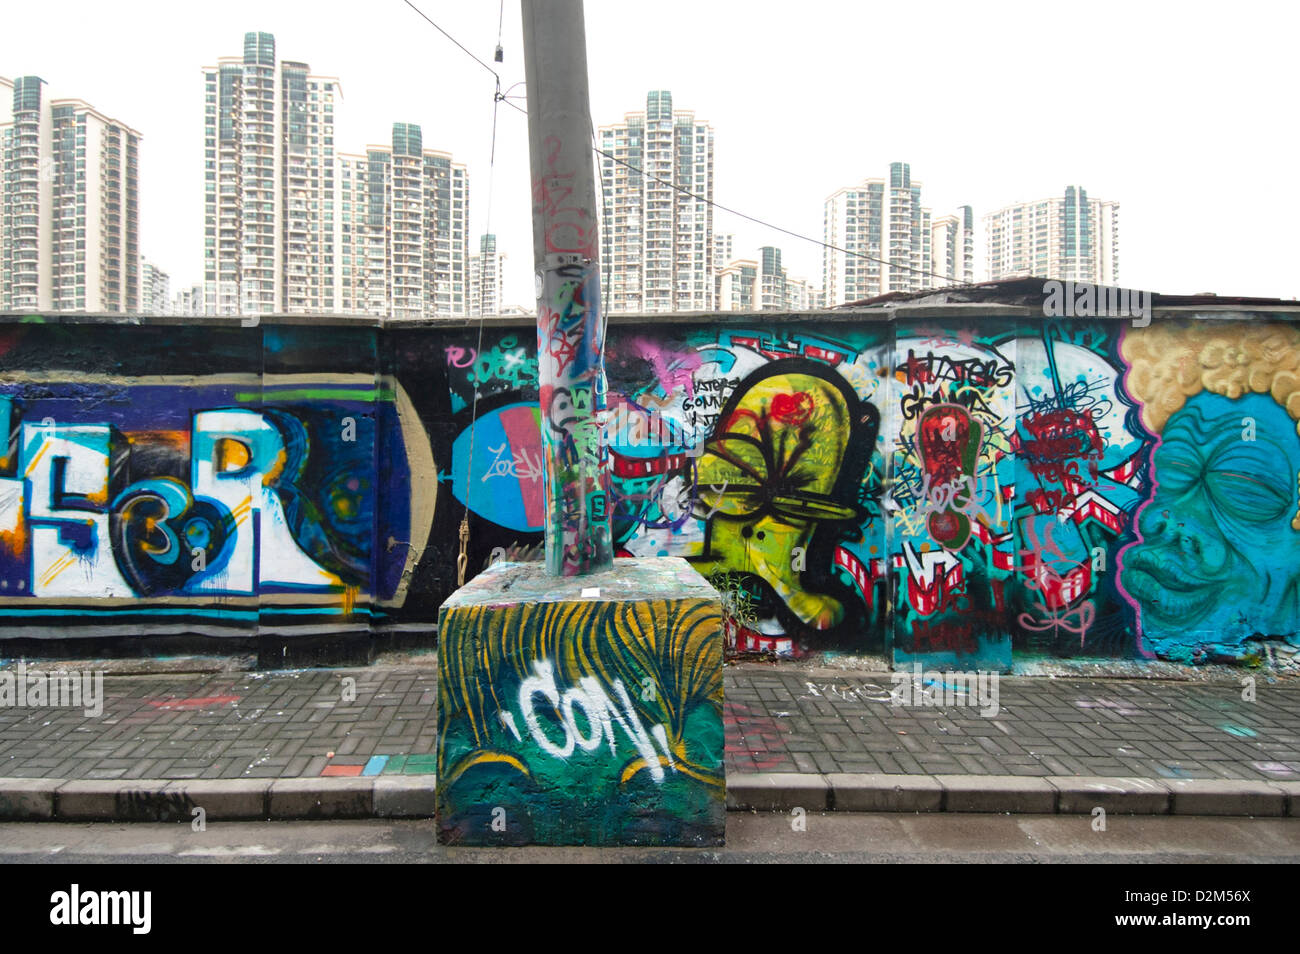 Shanghai M50 Wensan road art centre de murales, Photo Stock